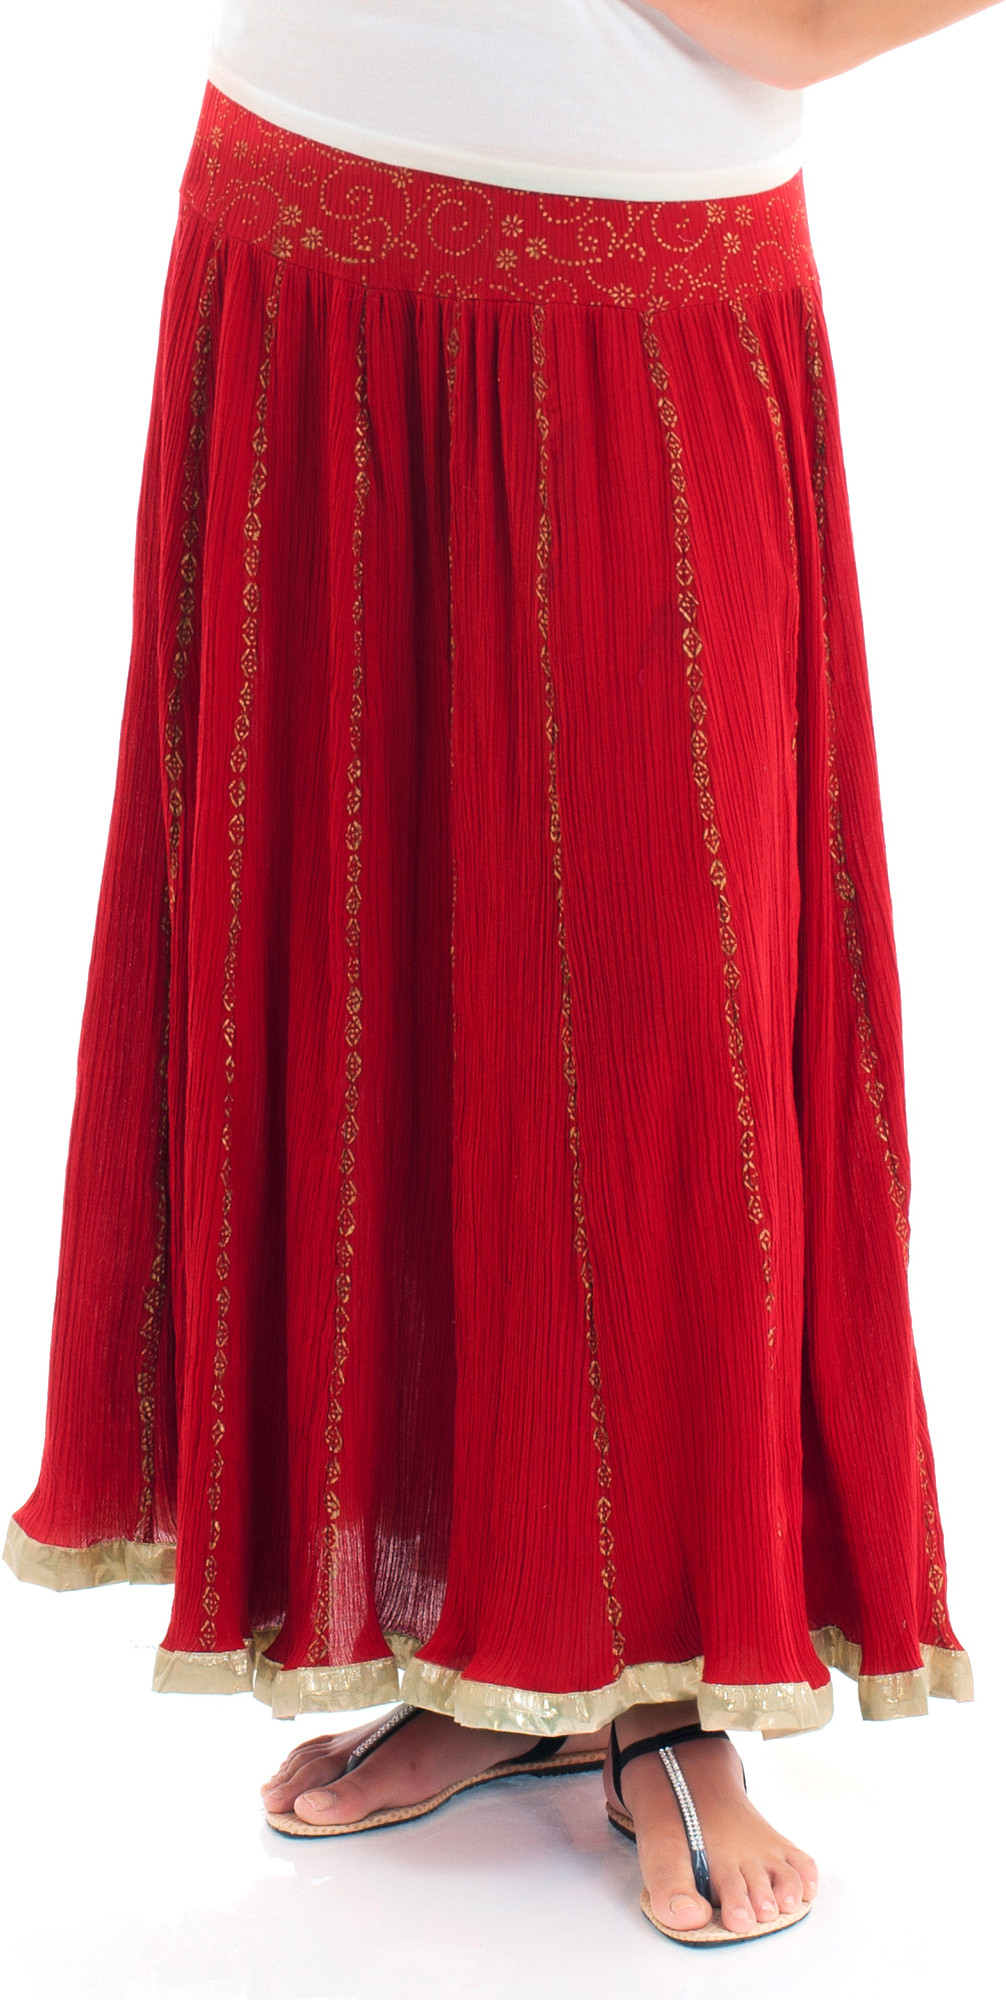 Naksh Jaipur Self Design Womens Broomstick Red Skirt